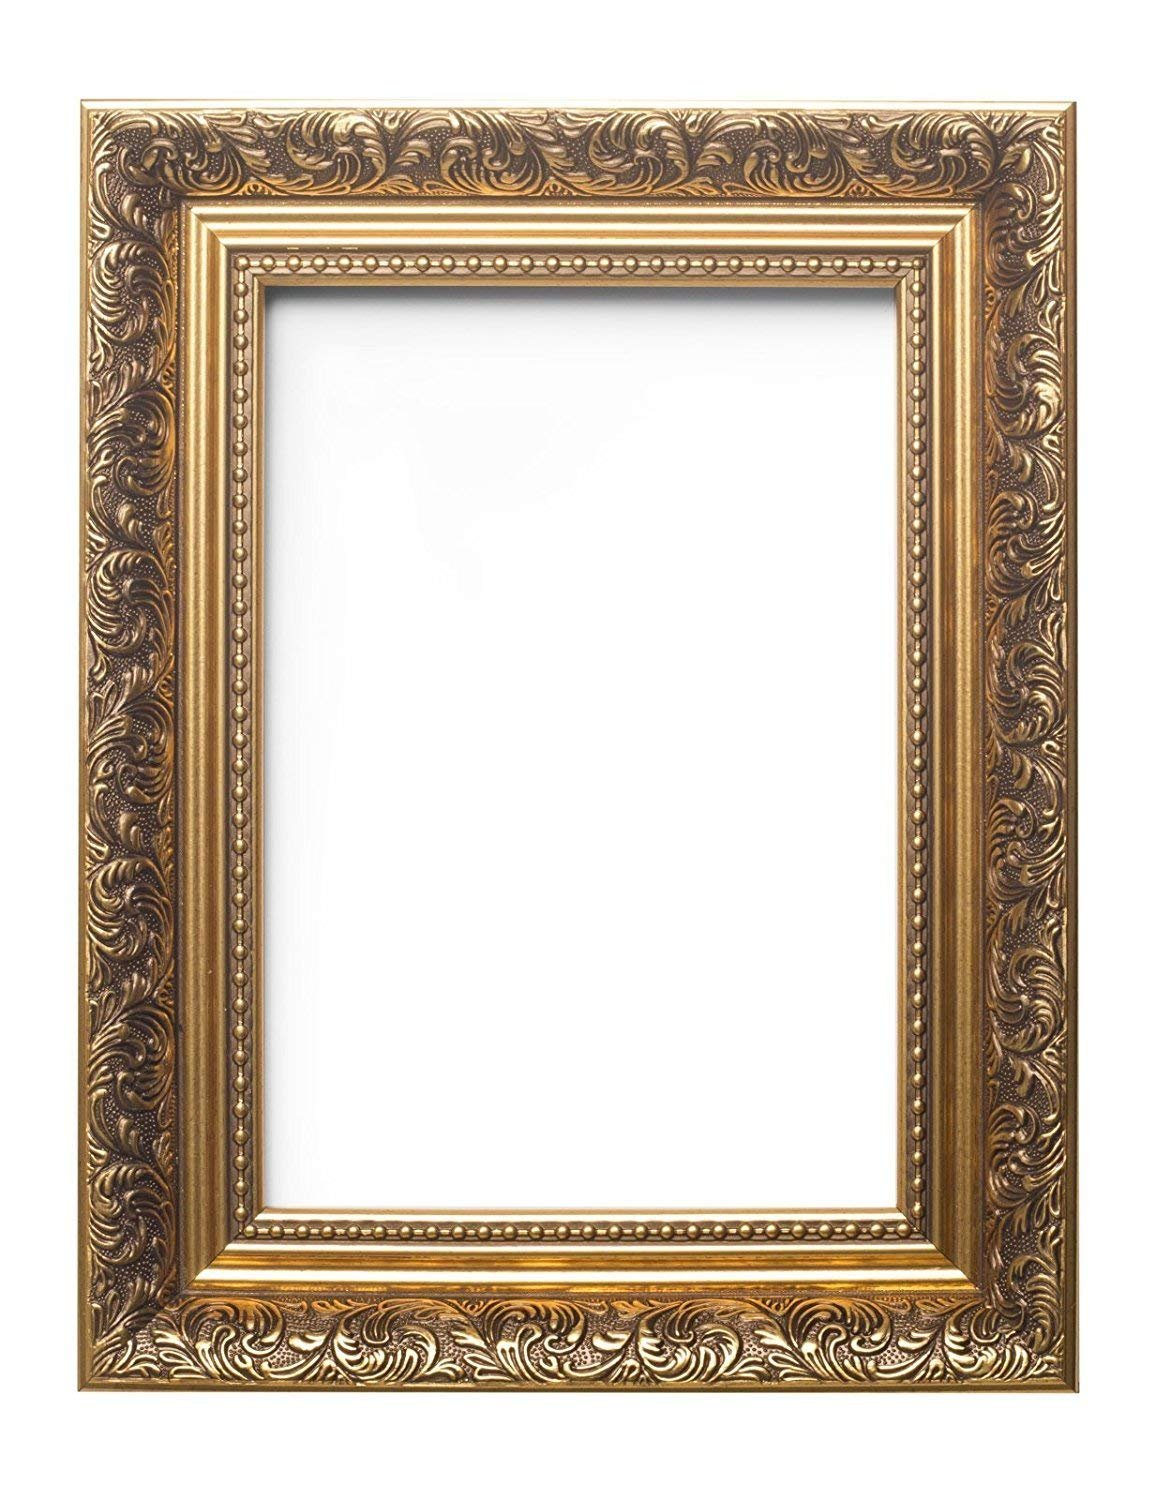 0bcb2b31013a Amazon.com - Memory Box Ornate Swept Antique Style French Baroque Style  Picture Frame Photo Frame Poster Frame - A4 Gold - FBA-OSAFS2-GLD-A4 -